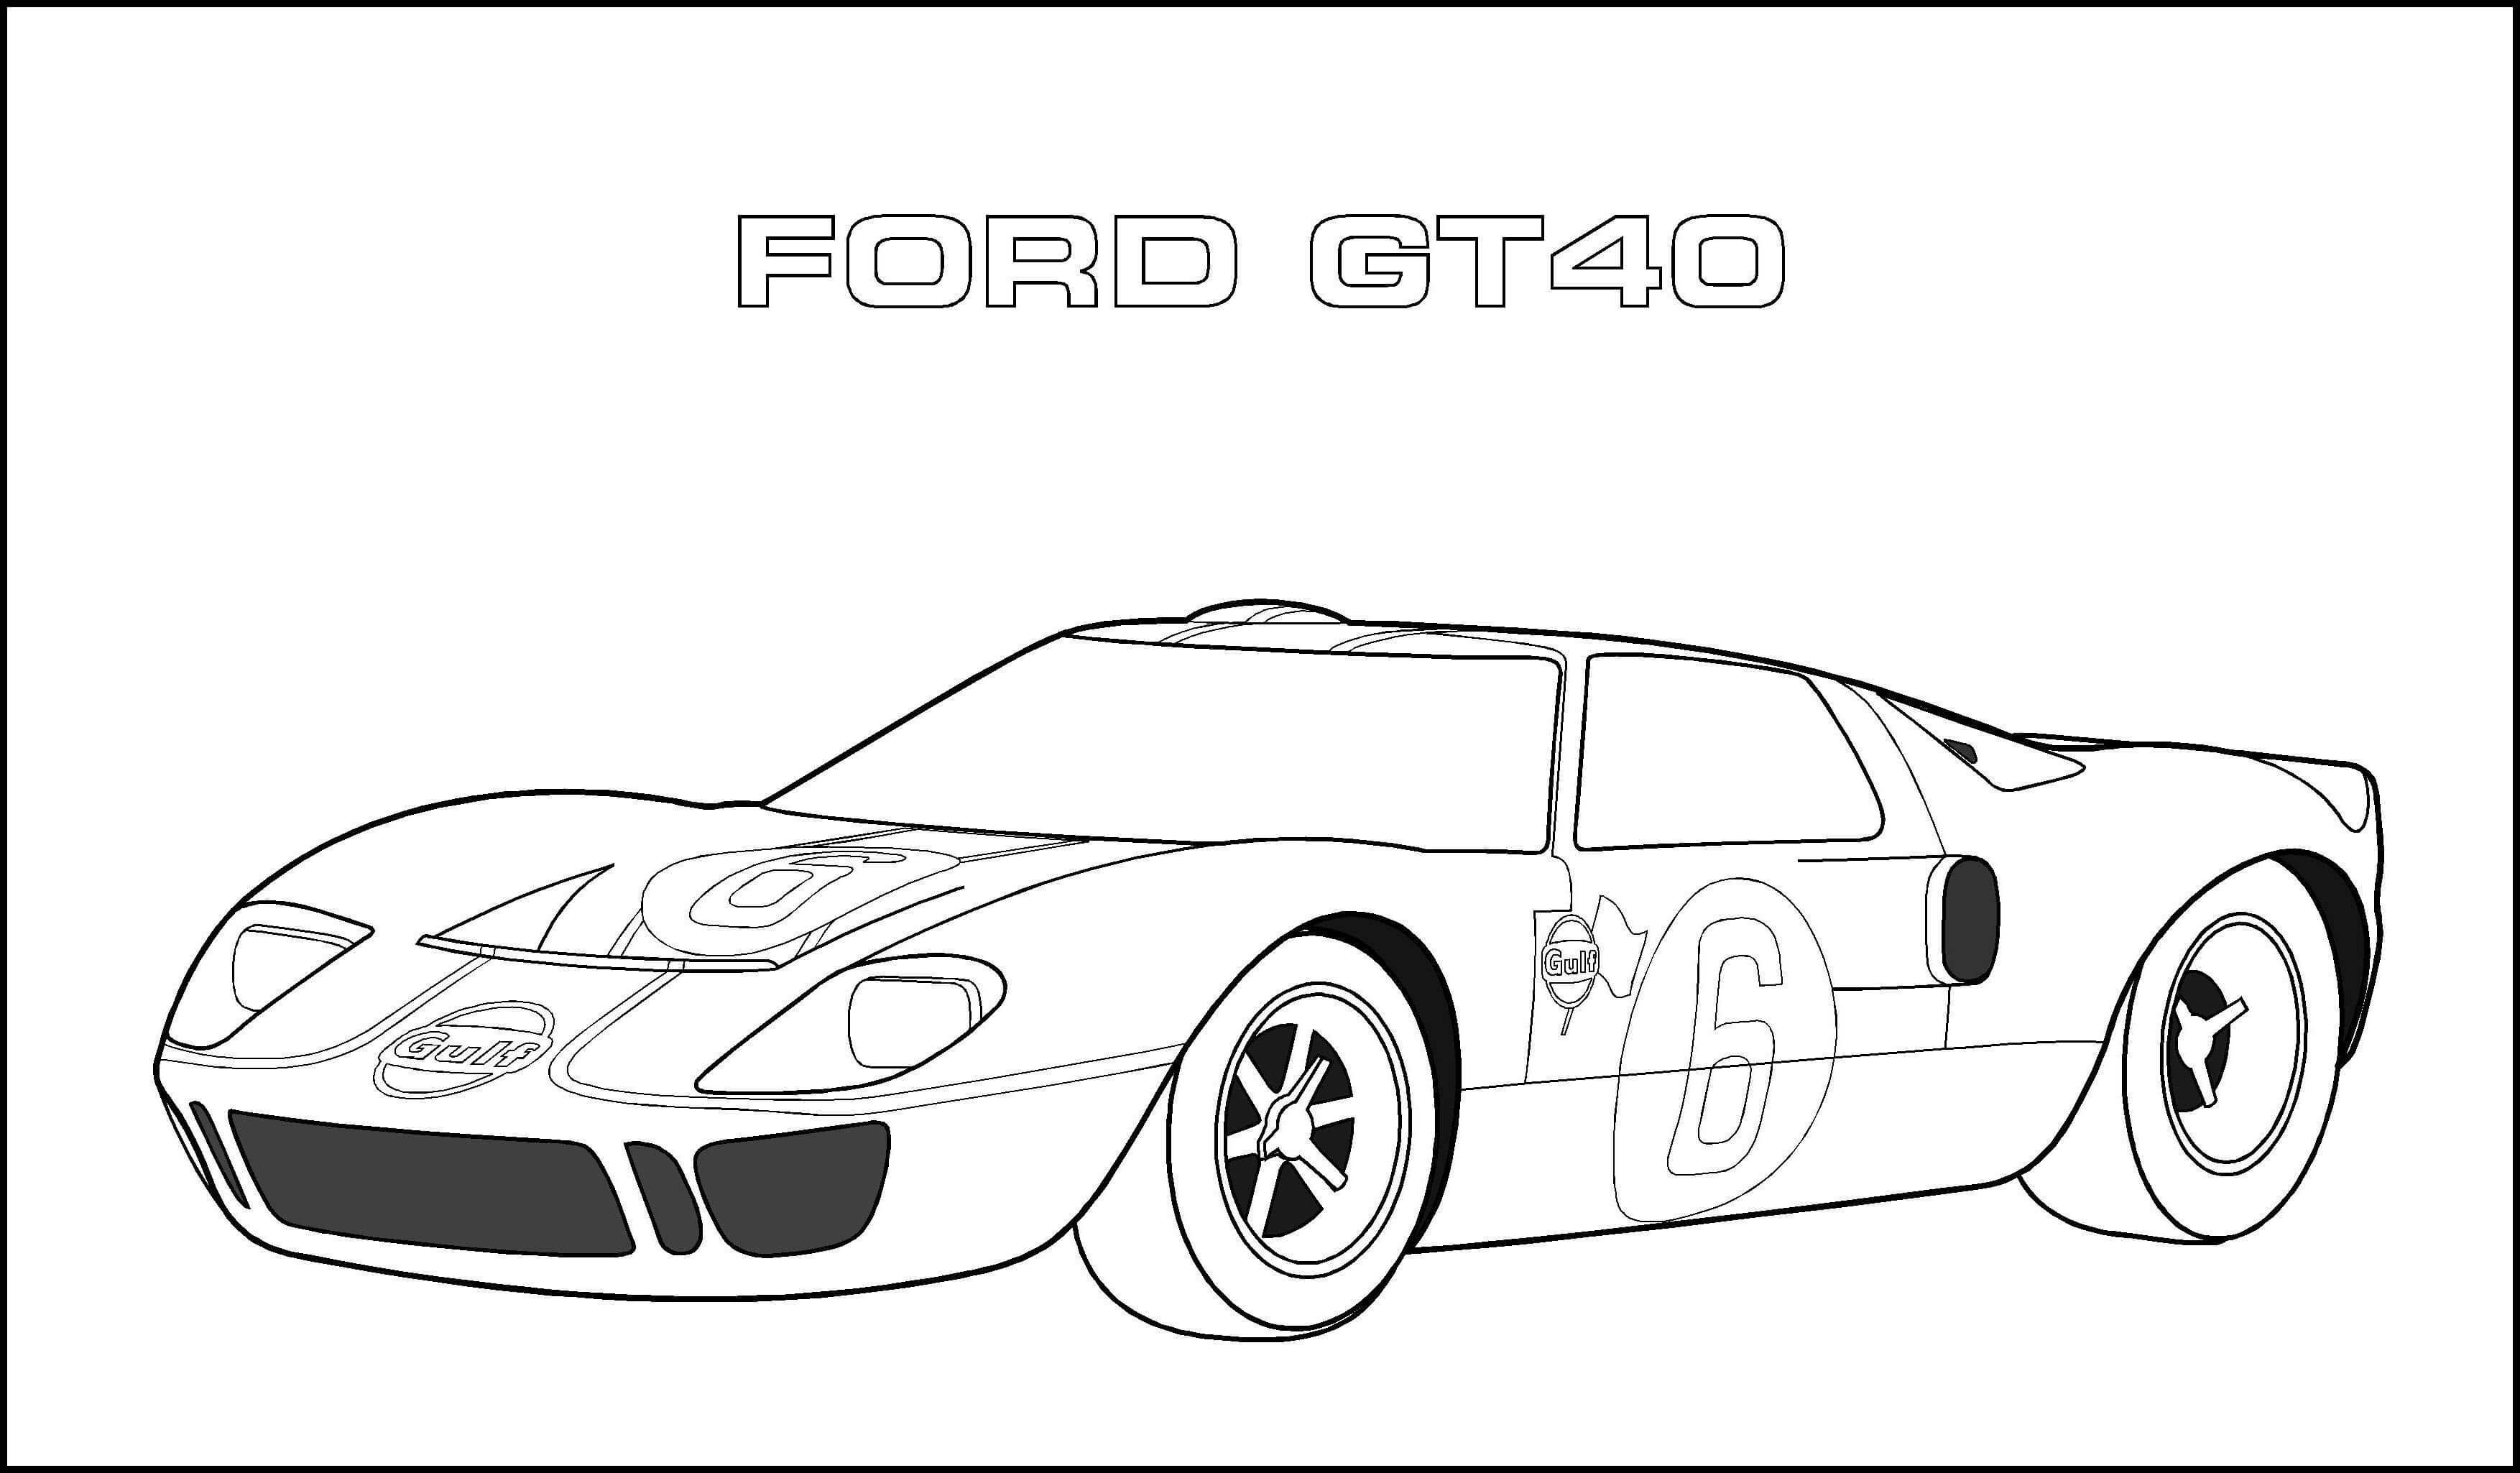 cool car colouring pages supercar coloring pages built by kids car colouring pages cool